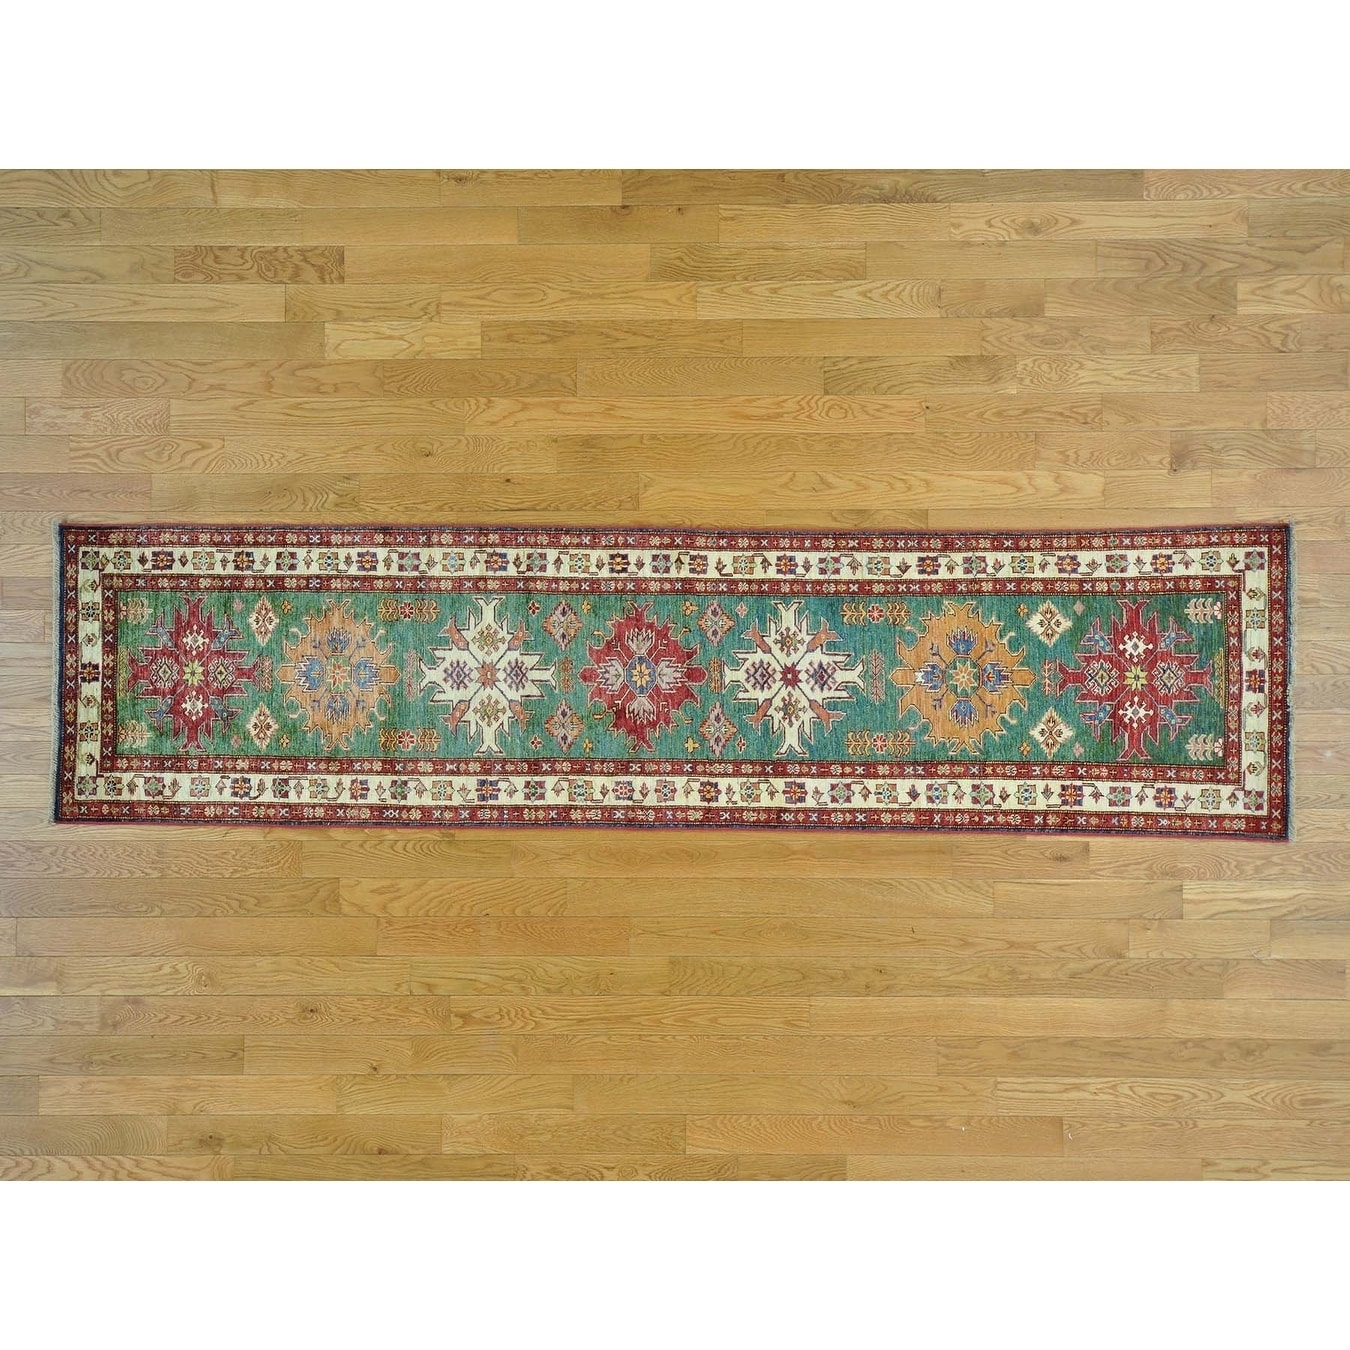 Hand Knotted Teal Kazak with Wool Oriental Rug - 2'6 x 10'1